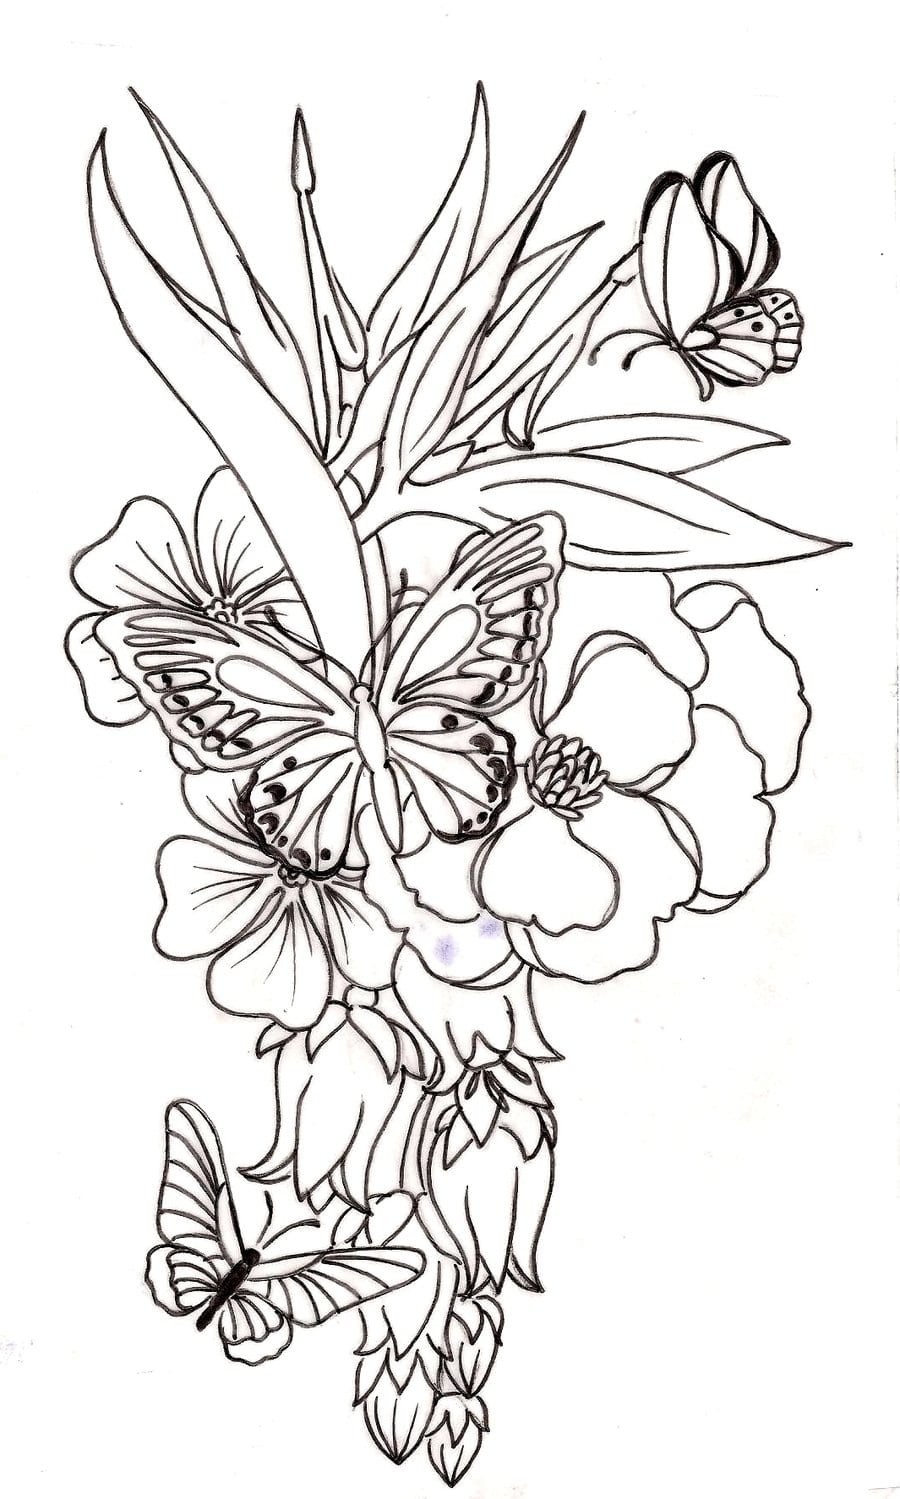 Without Color Flower N Butterflies Tattoo Design » Tattoo Ideas